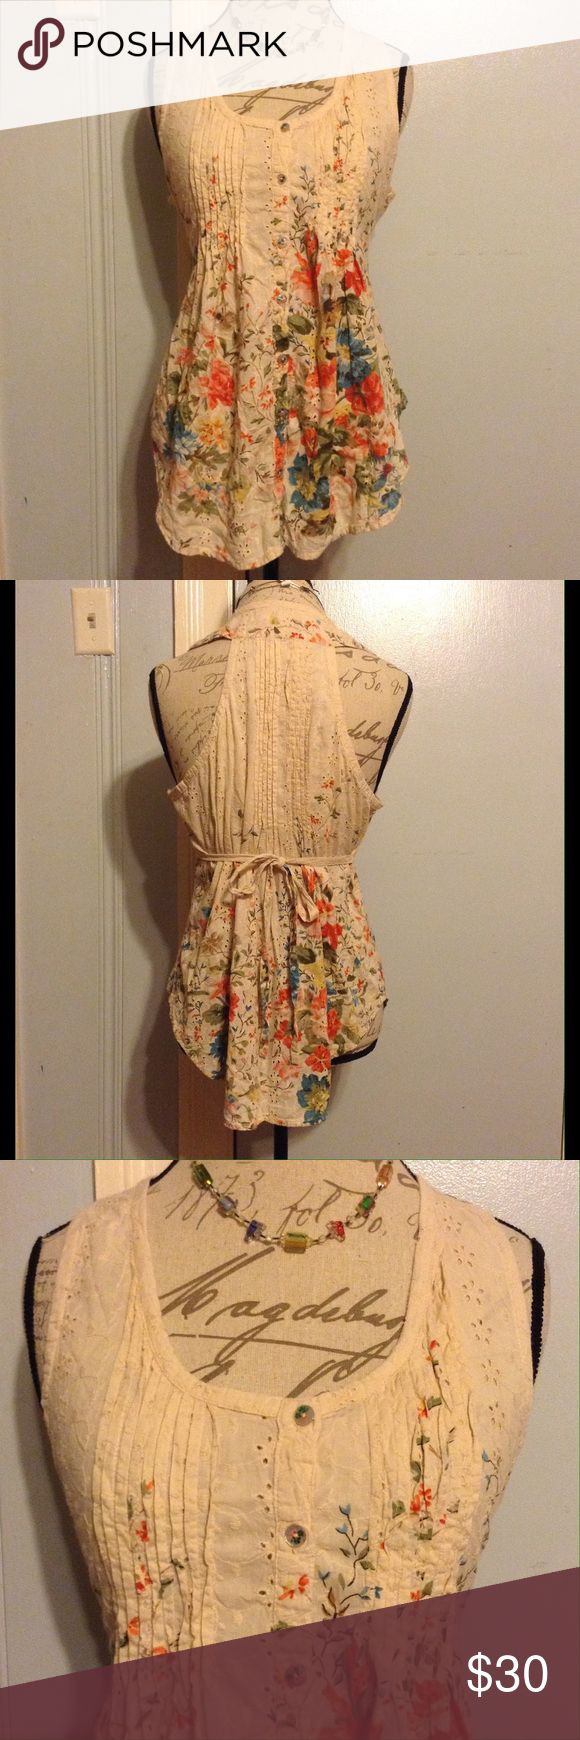 "AMERICAN RAG Cream Razorback Floral Tie Back Top SIZE 18.5"" Sides Length. 24"" Front & Back Lengths. Scoop Neckline. Button Down Center. Pleated Grooves & Flower Hole Cut-Outs w/ Embroidered Flowers & Vines. Sewn Tie Back From Sides. Extra Fold & Pleat For Back Structure. Boho Chic. Mat Tag Miss. EUC WORN ONCE American Rag Tops Button Down Shirts"